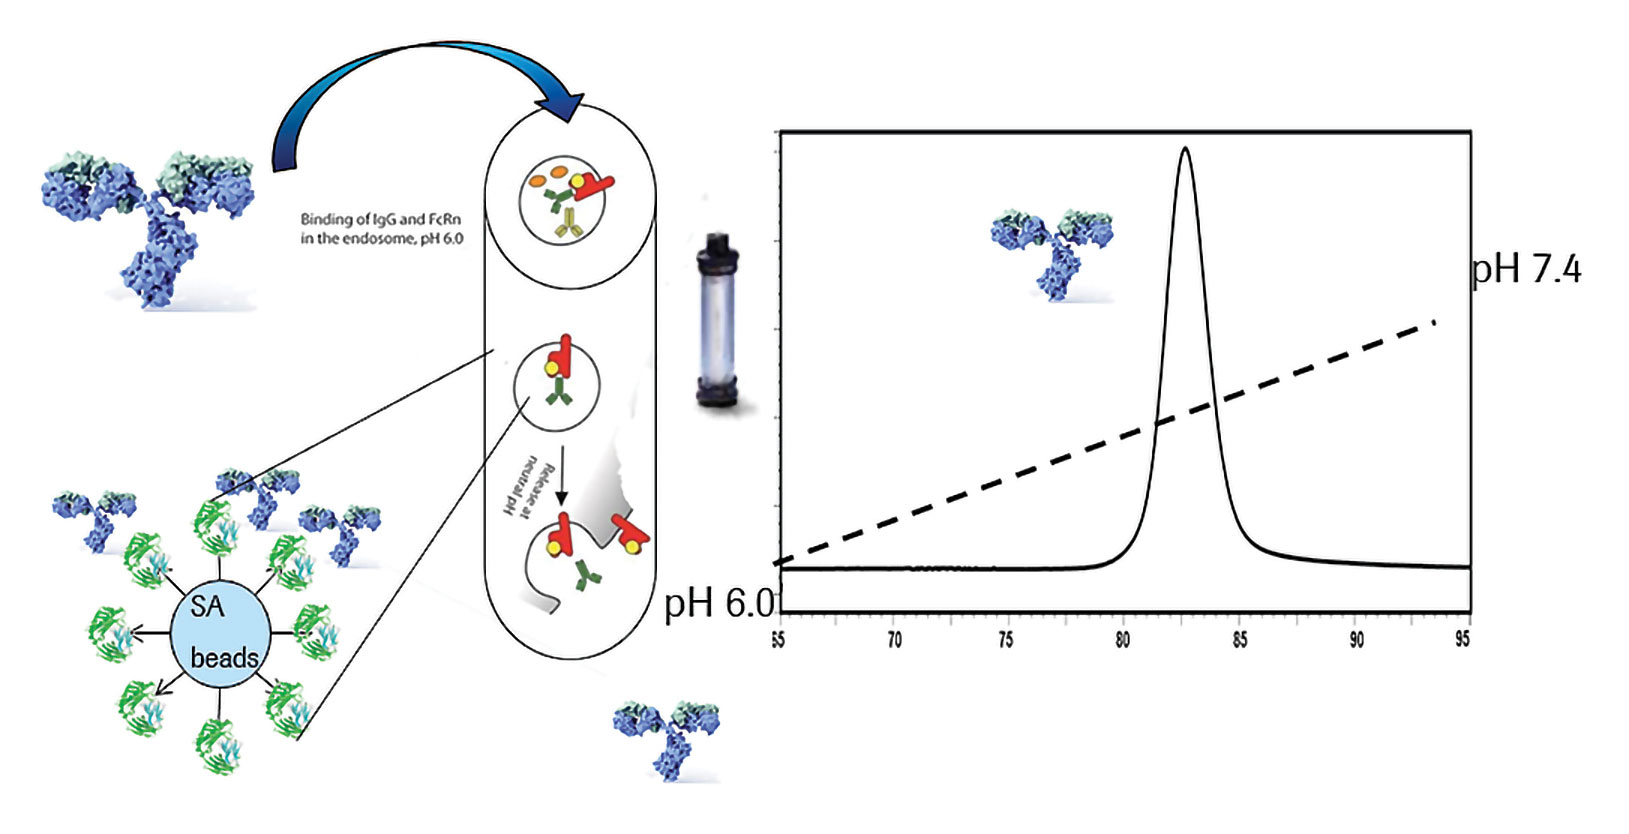 Mimicking Natural Antibody Recycling For In Vitro